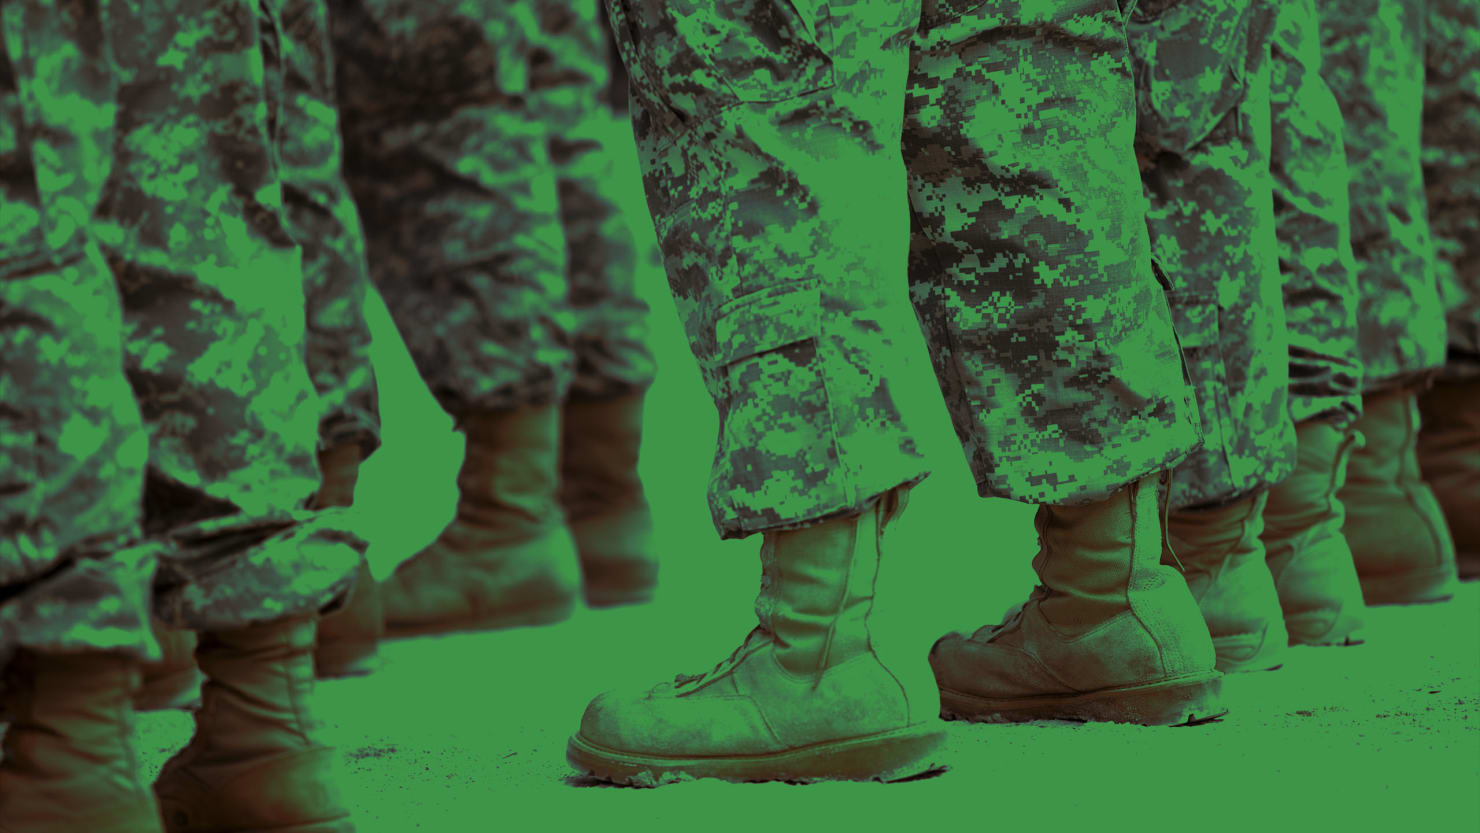 Marines Share Photo of Nude Unconscious Woman in New Revenge Porn Leak